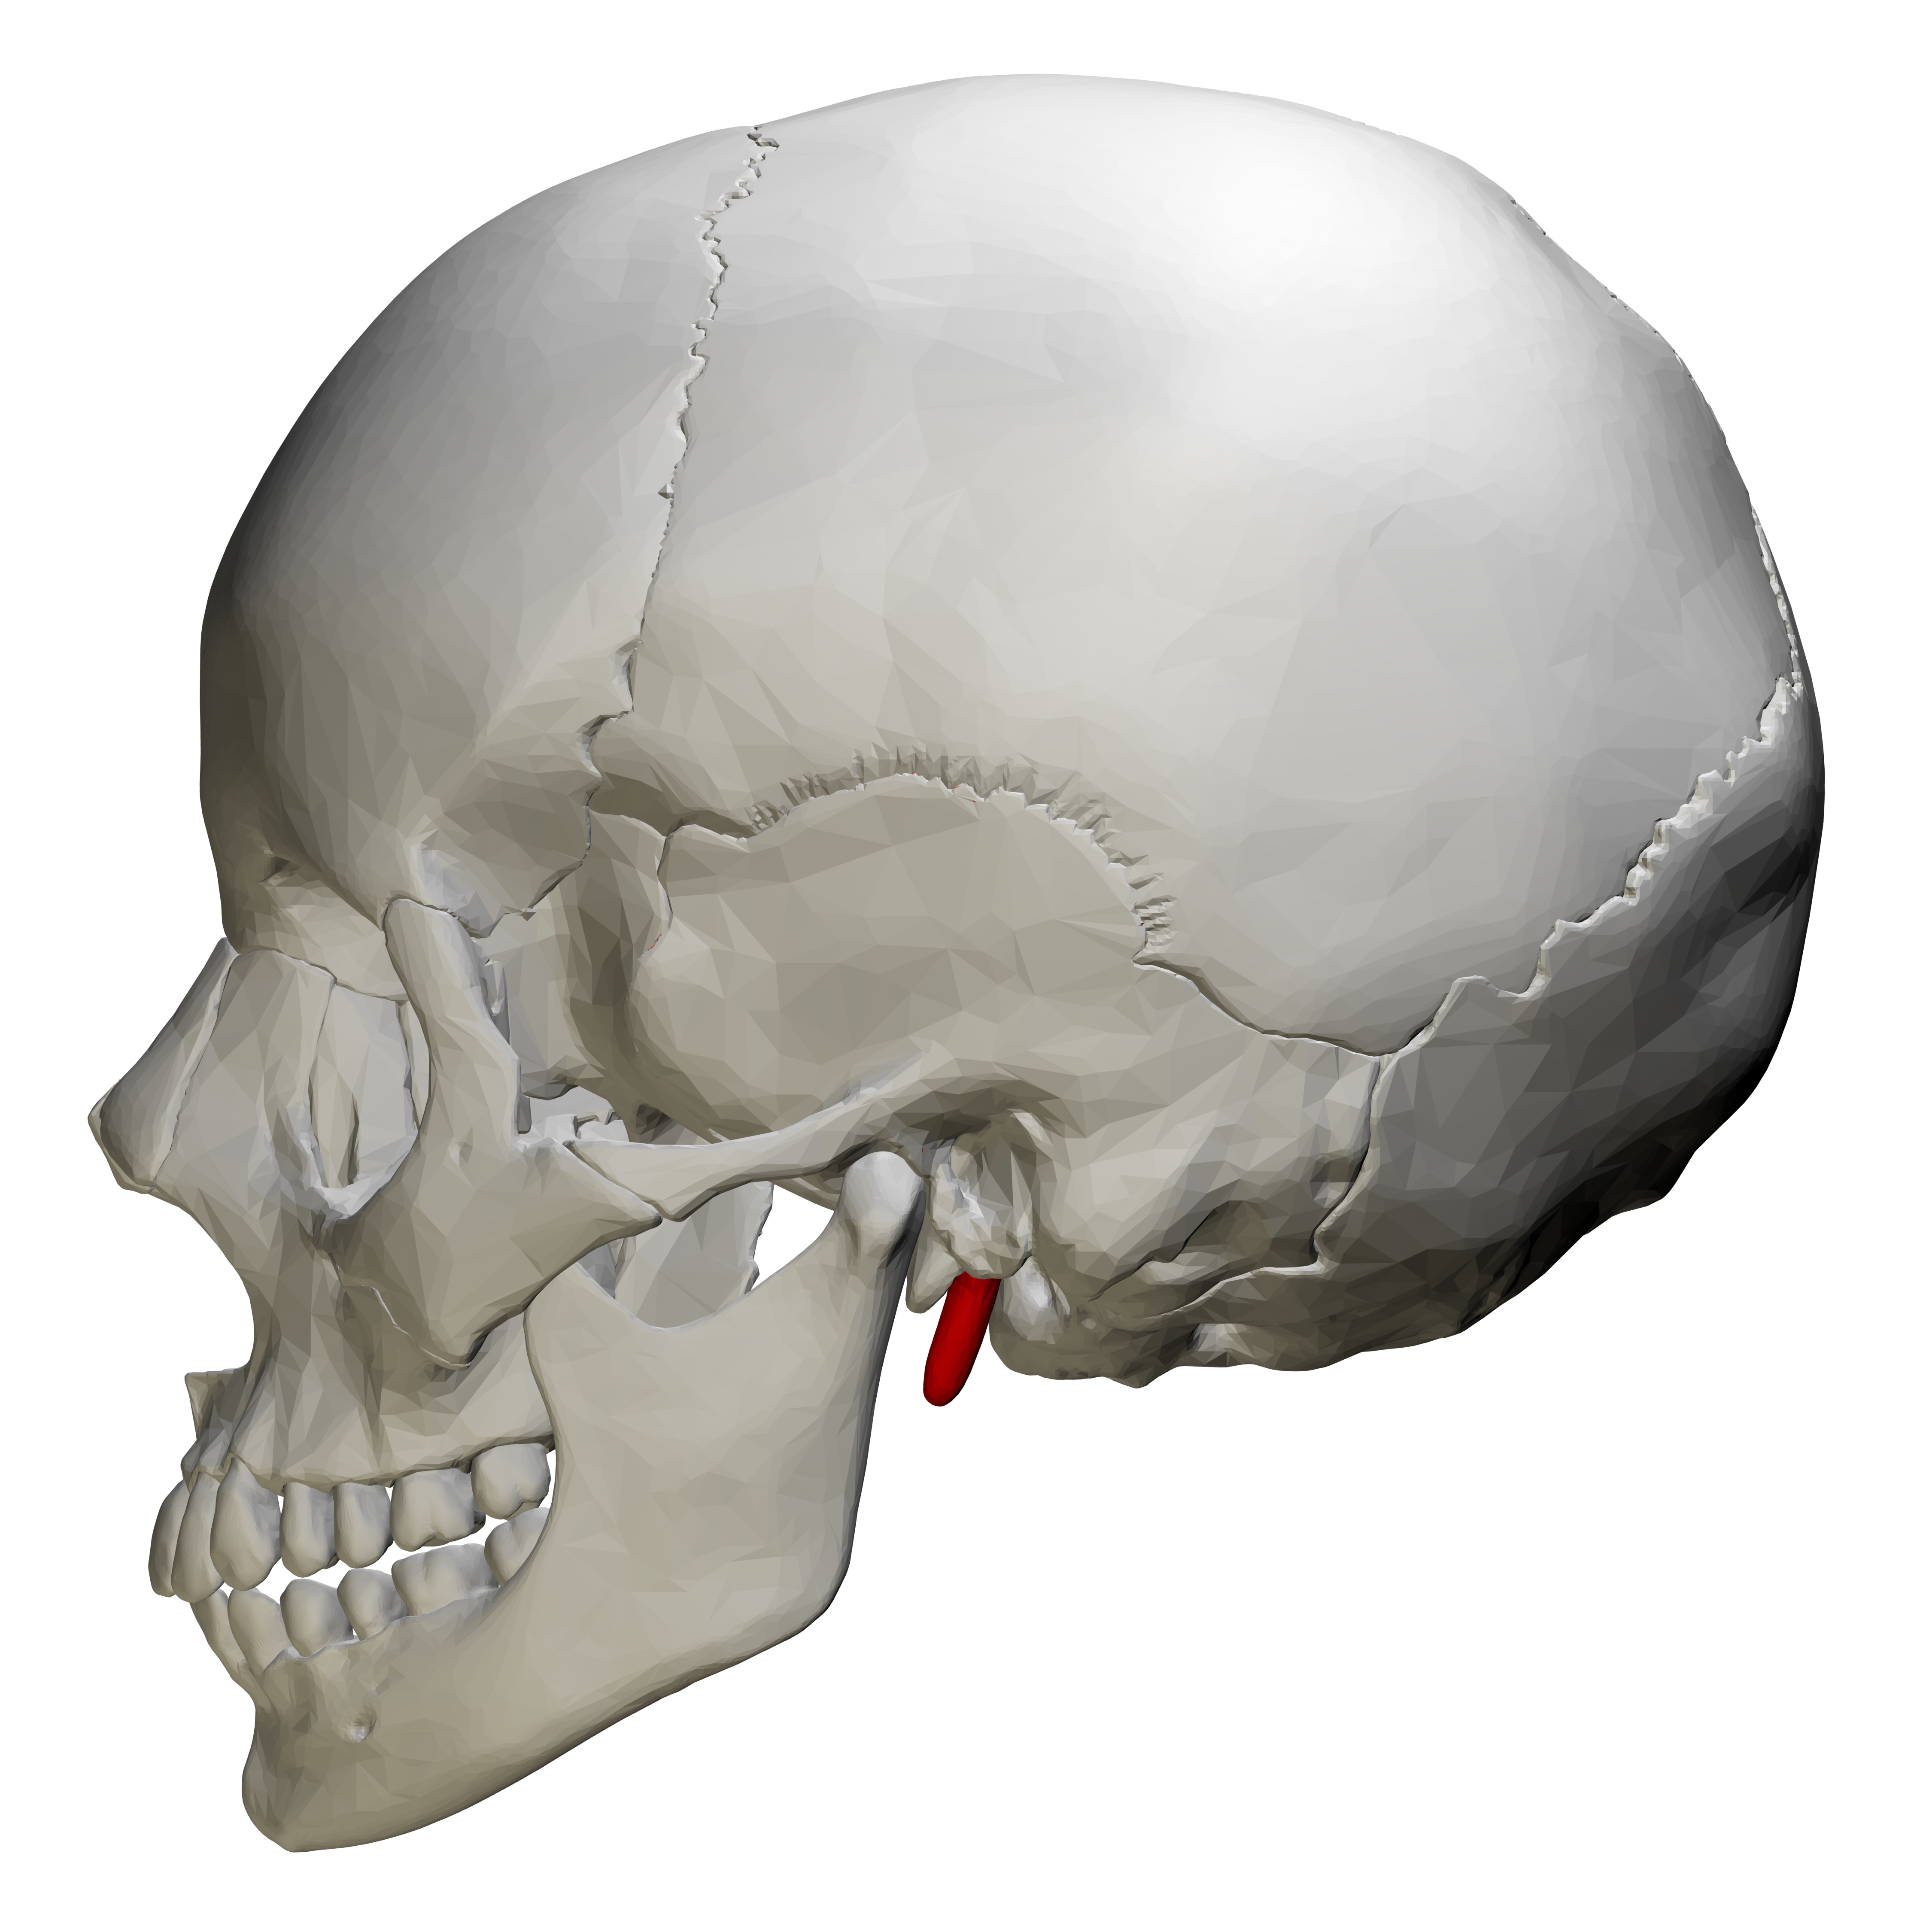 File:Styloid process of temporal bone - lateral view01.png